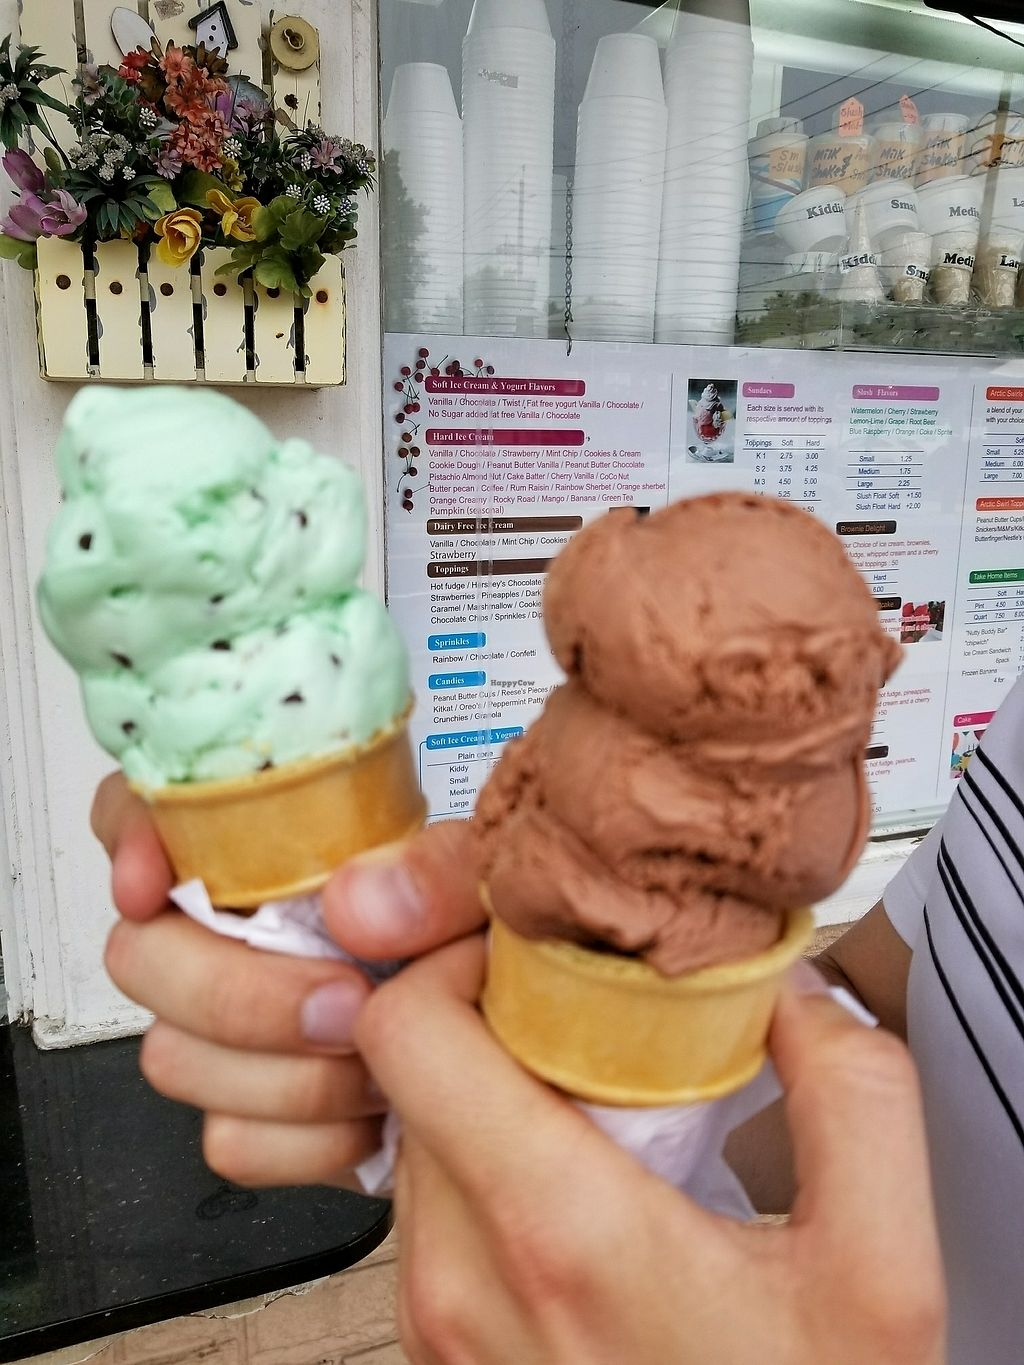 """Photo of Dairy Deluxe  by <a href=""""/members/profile/tikhonova87"""">tikhonova87</a> <br/>dairy free ice-cream <br/> July 28, 2017  - <a href='/contact/abuse/image/30942/285988'>Report</a>"""